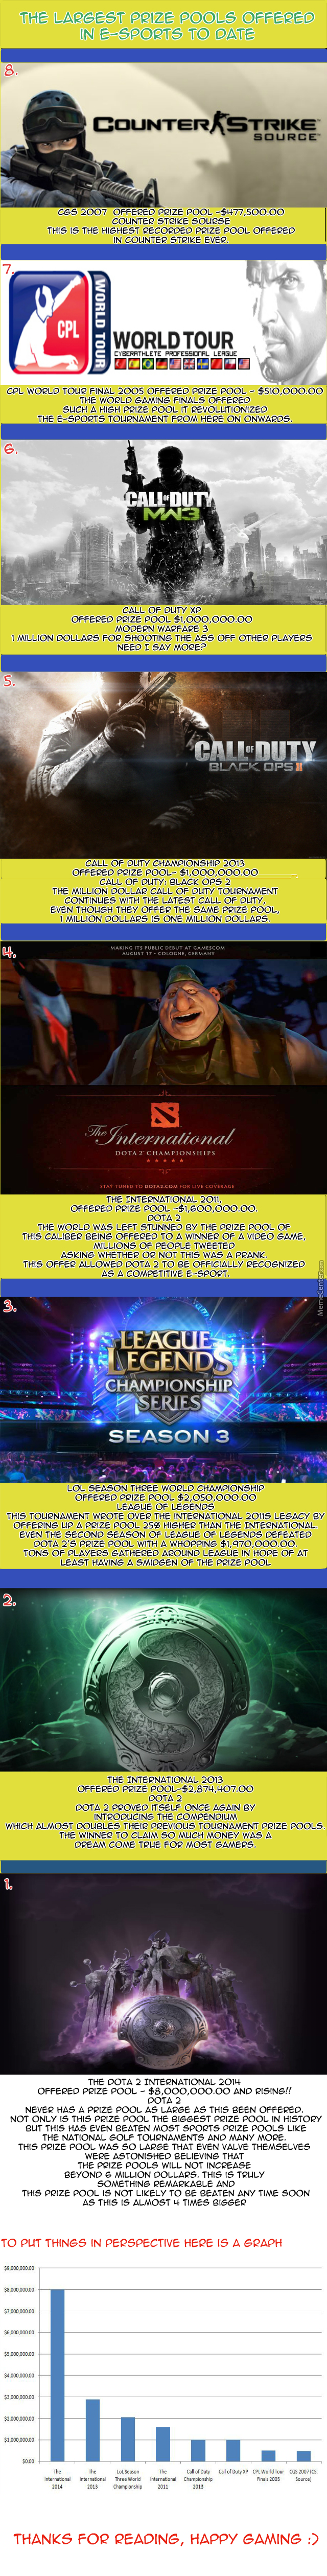 Top 8 E-Sports Prize Pool Offers